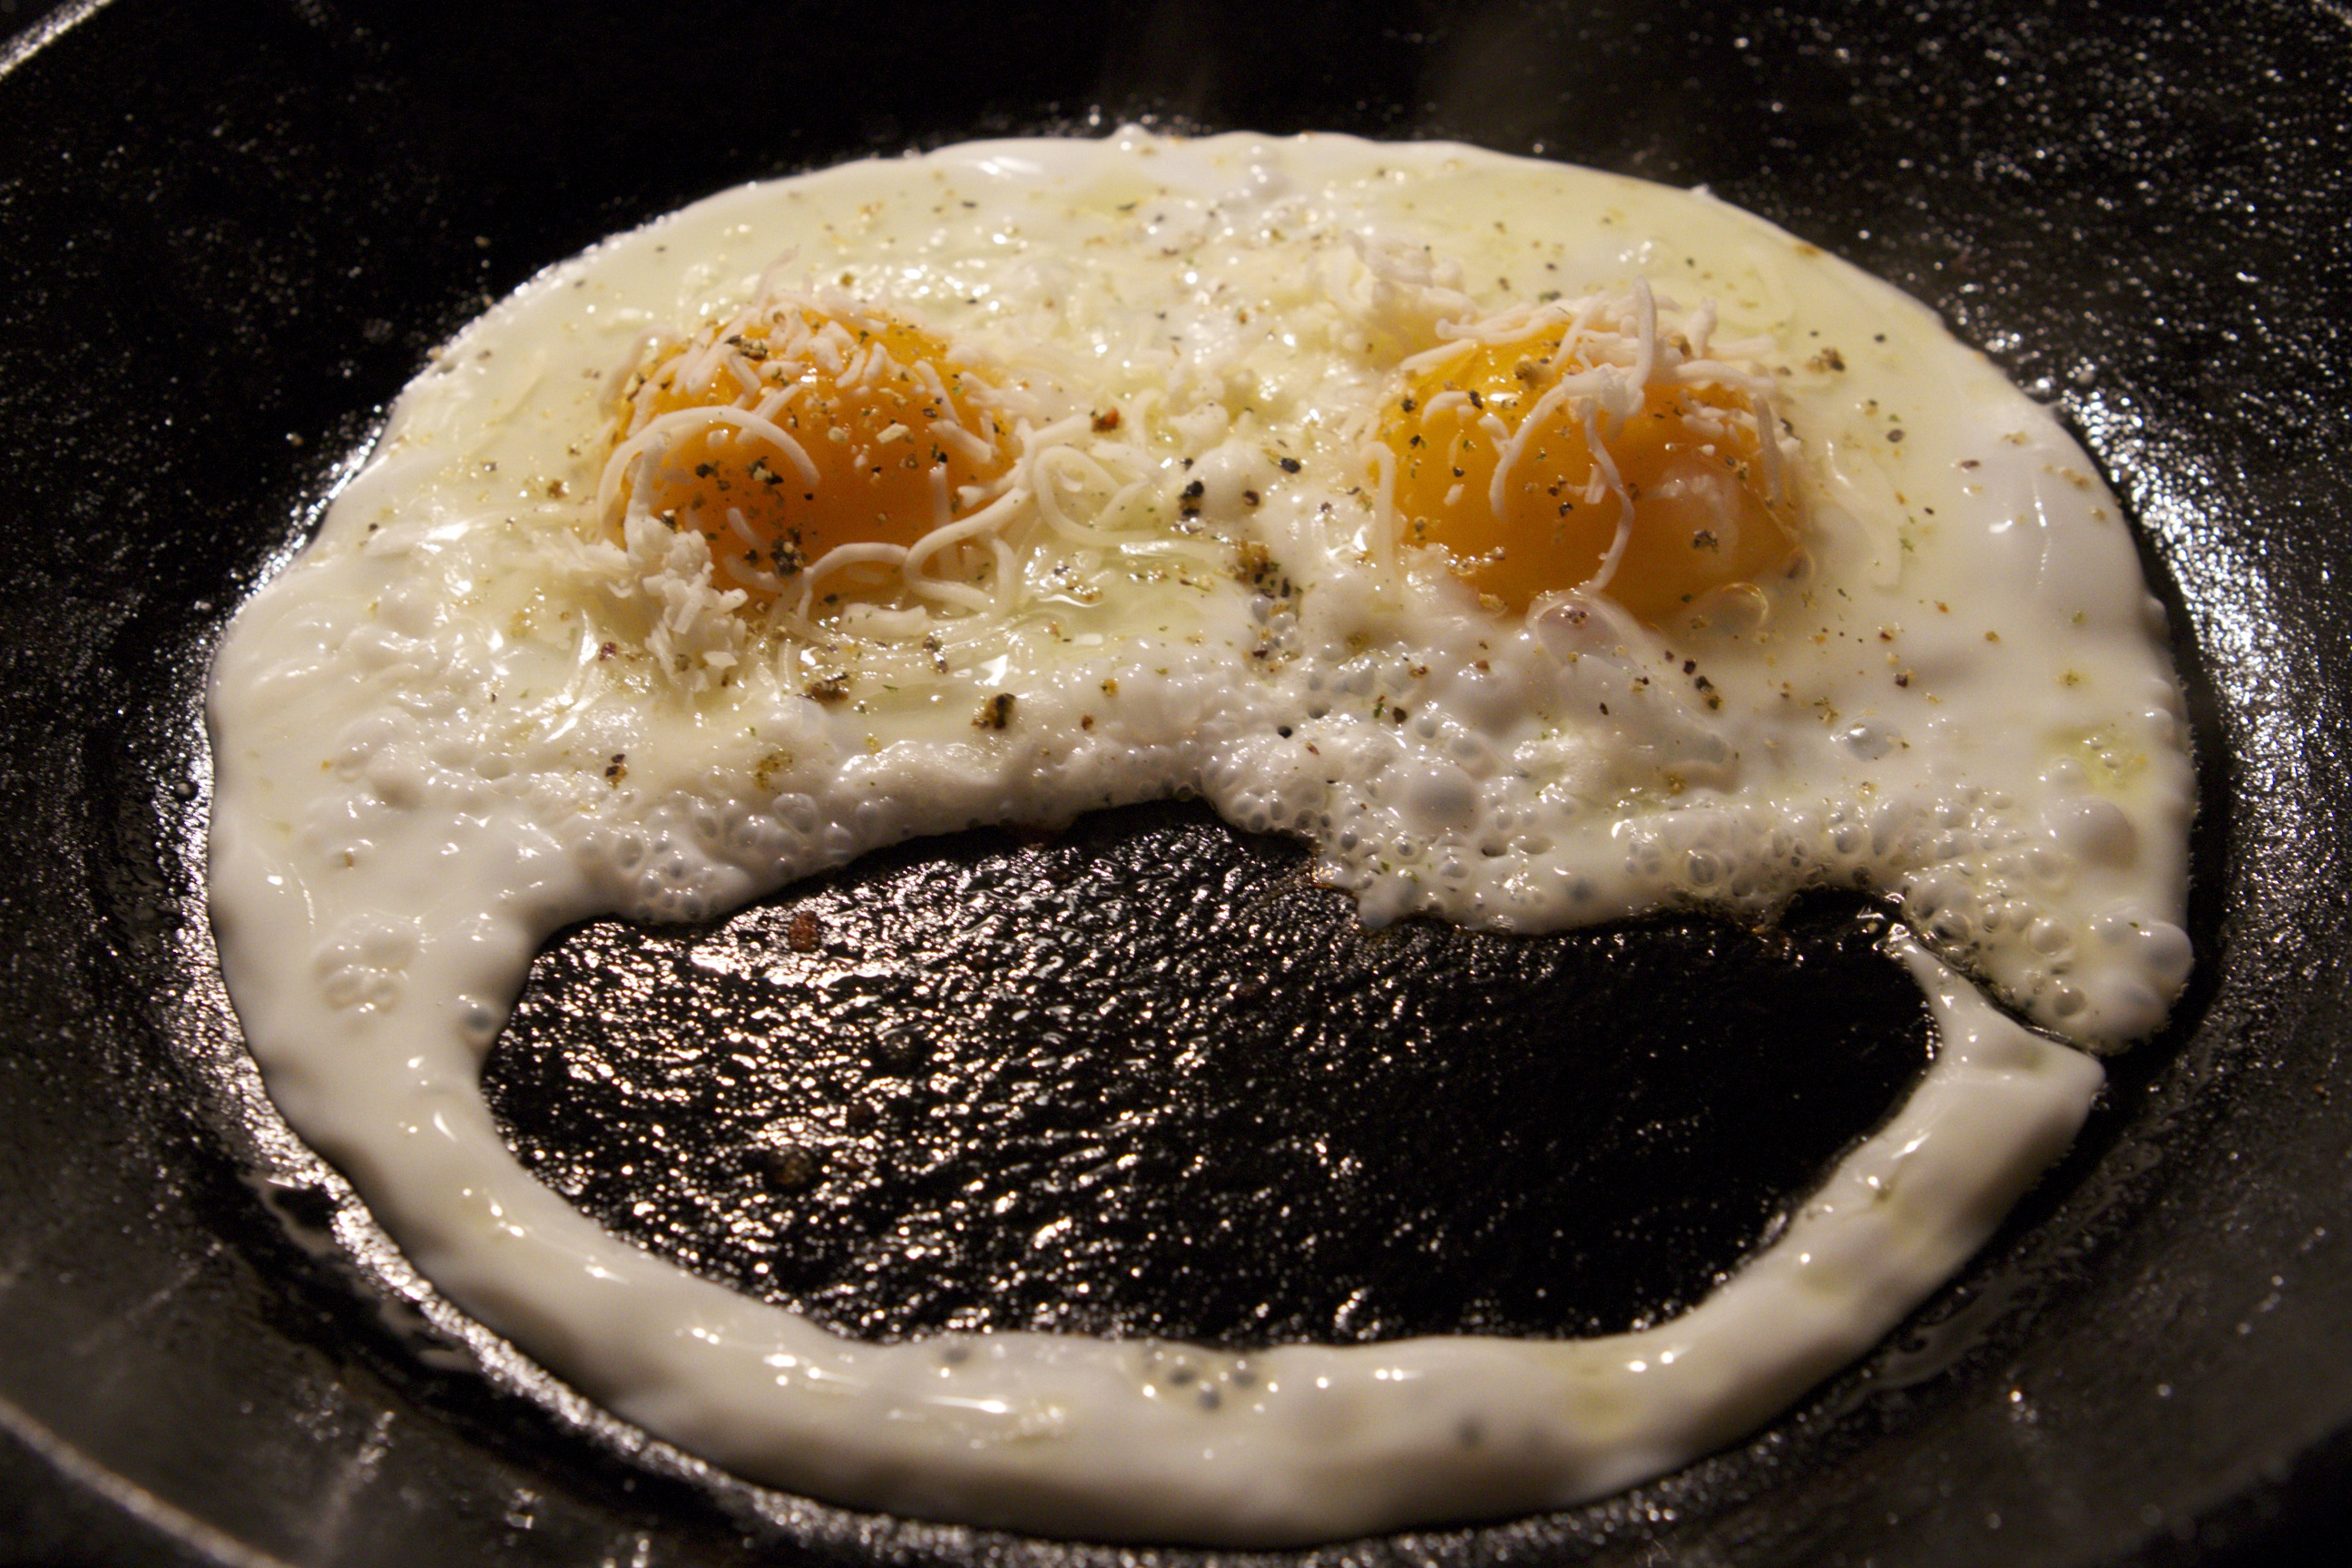 Smiley face made of frying eggs